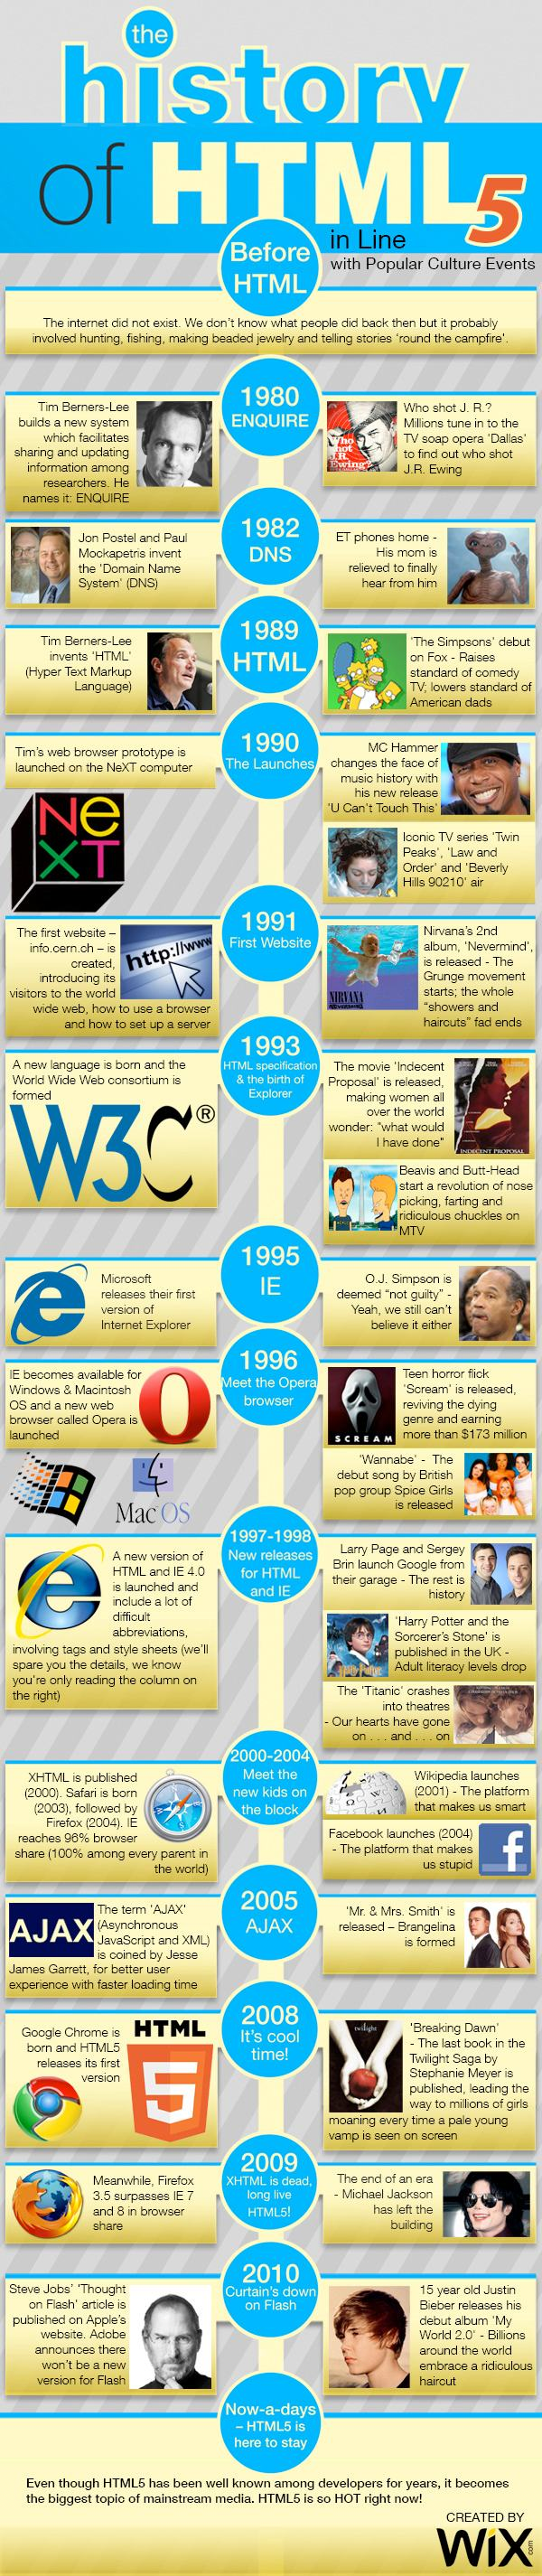 The Historical Evolutionary Timeline of HTML5